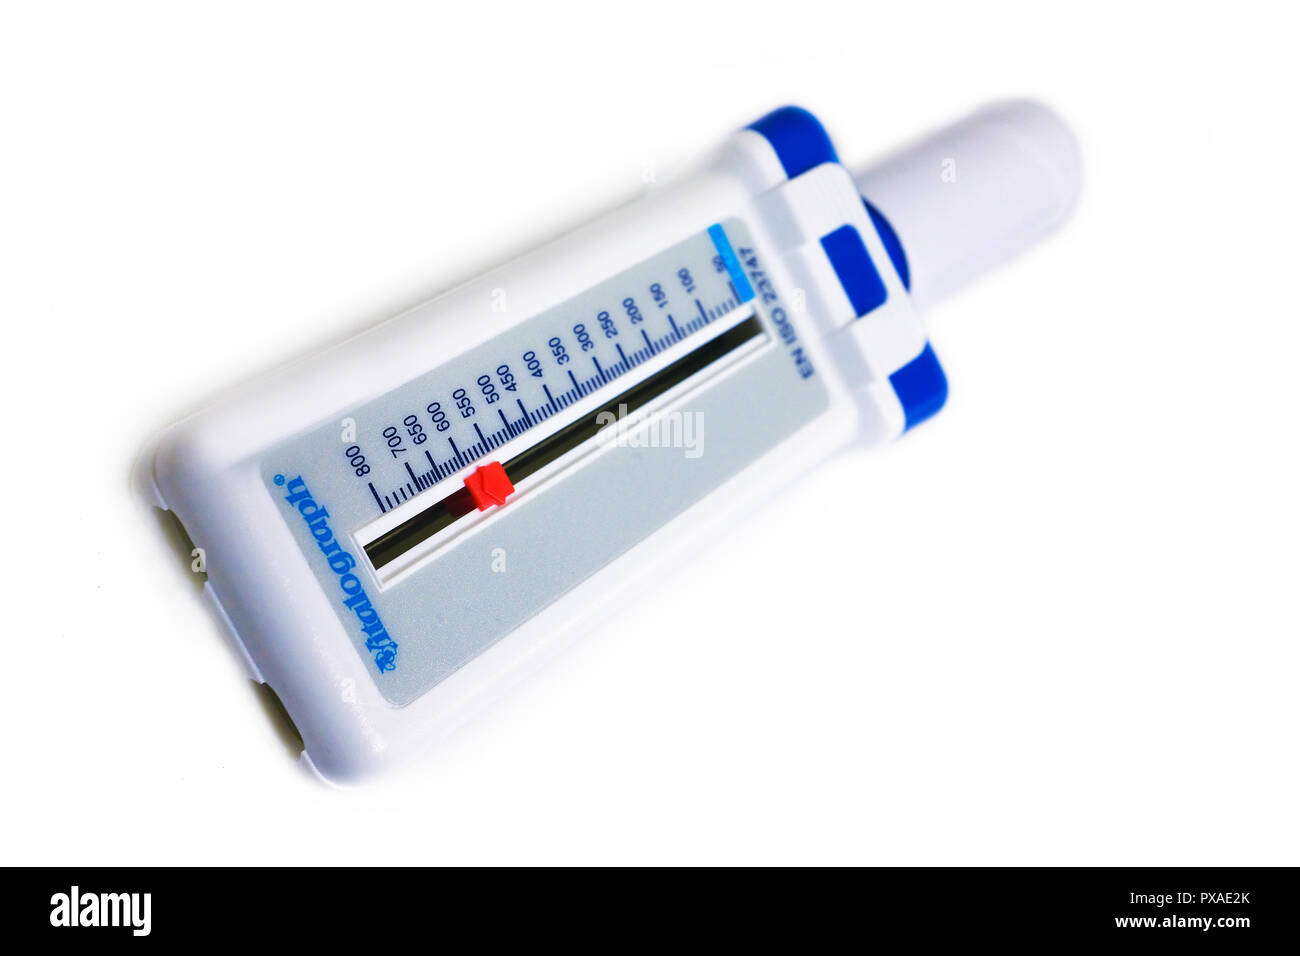 Vitalograph peak flow meter on a white background - Stock Image